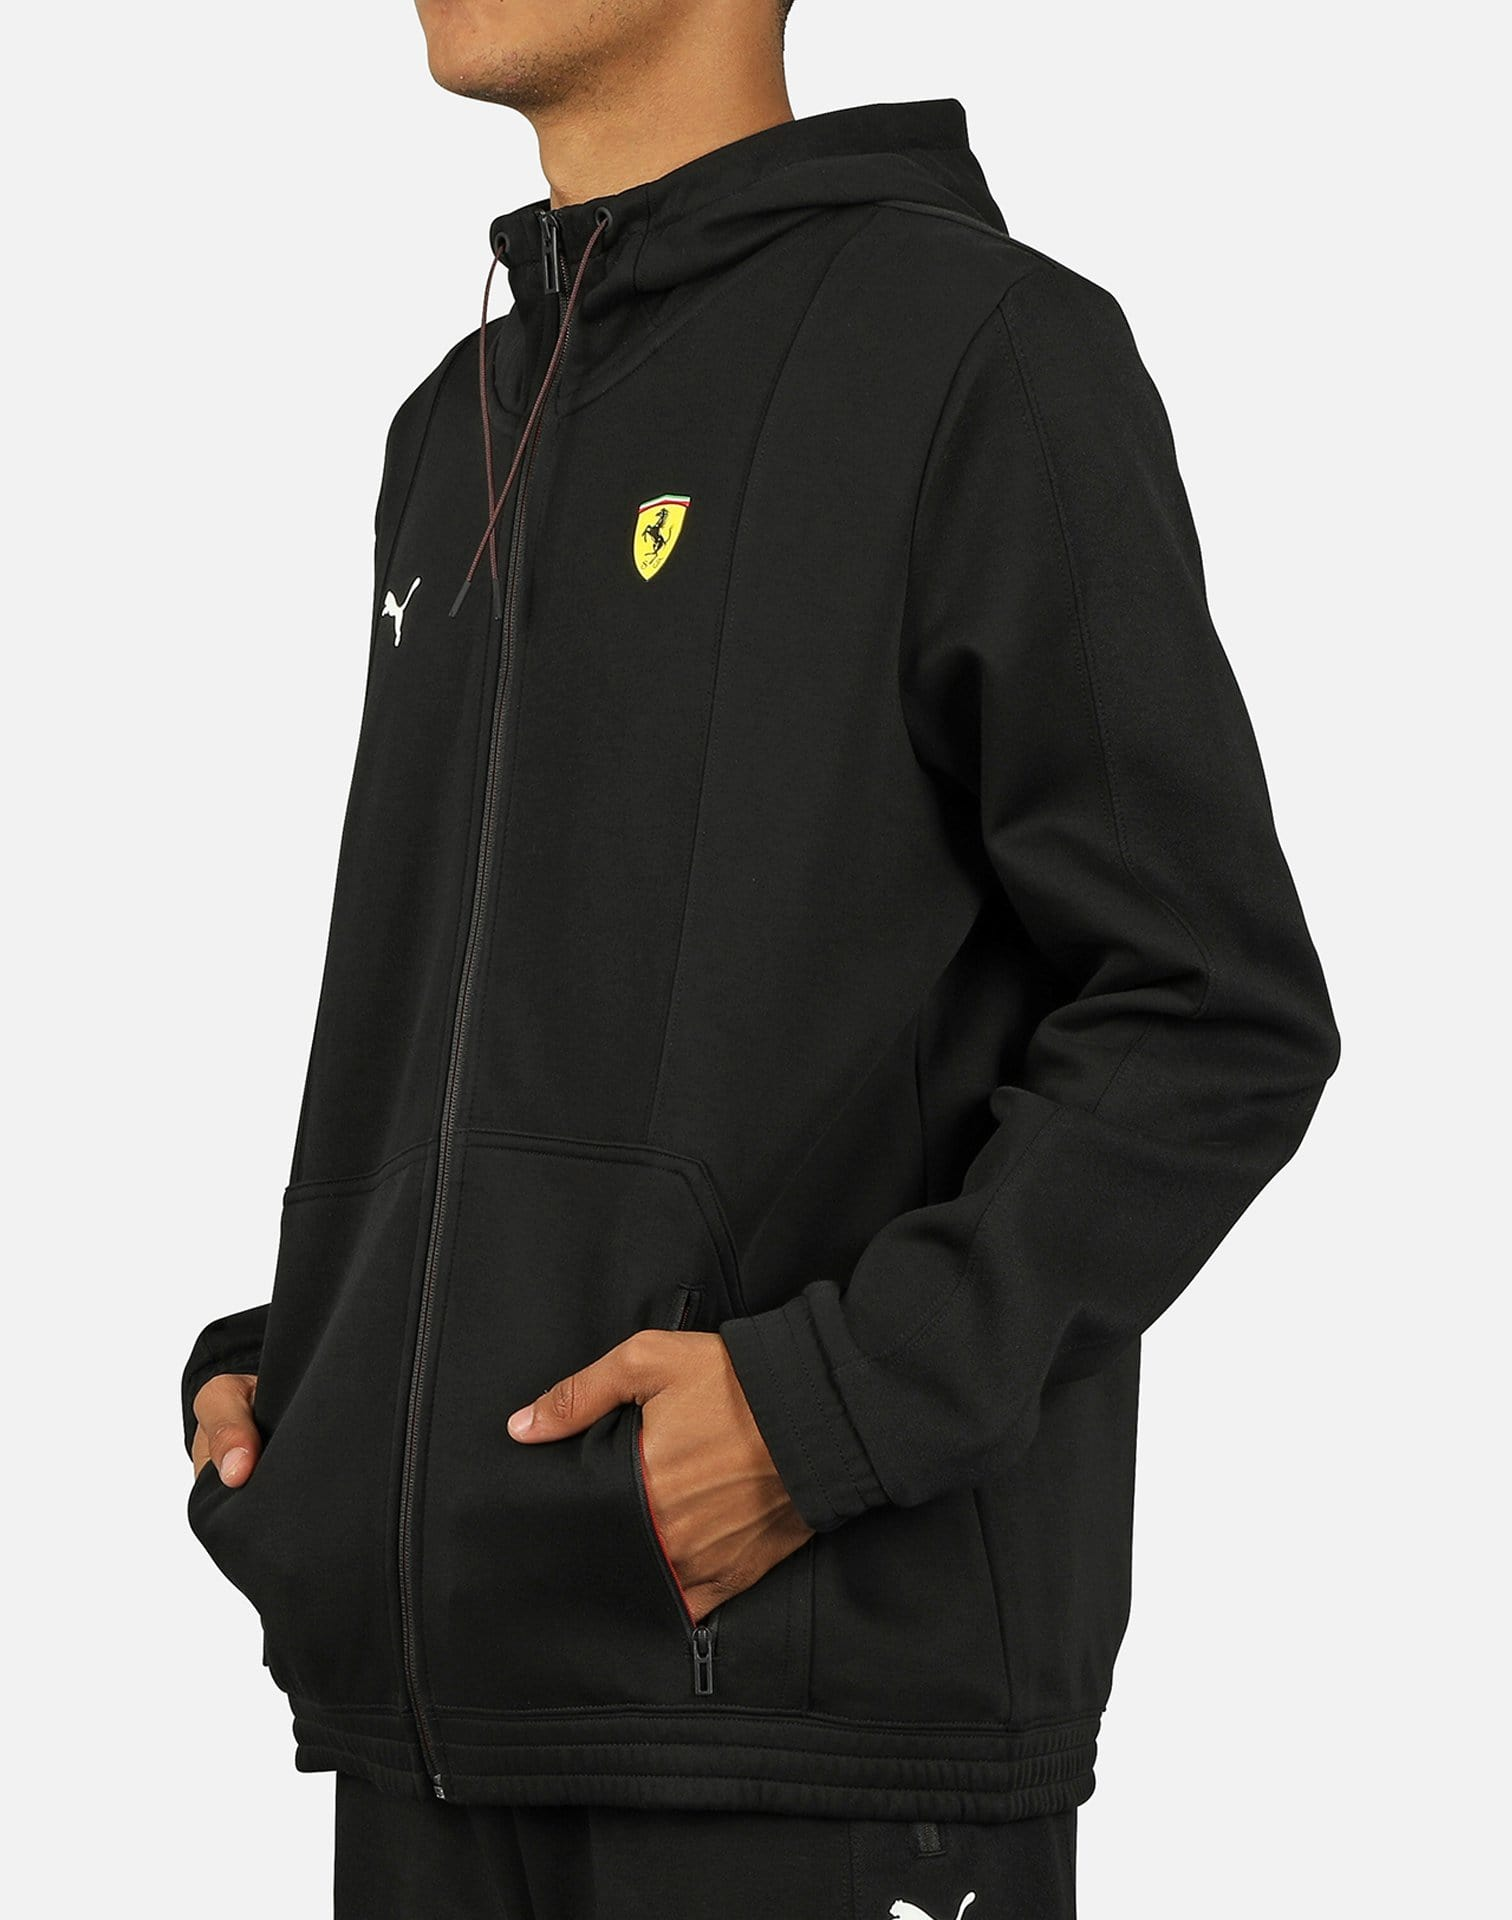 FERRARI*PUMA*HOODED SWEAT JACKET*BLACK//*MEN/'S SIZE X LARGE* brand NEW W//TAGS